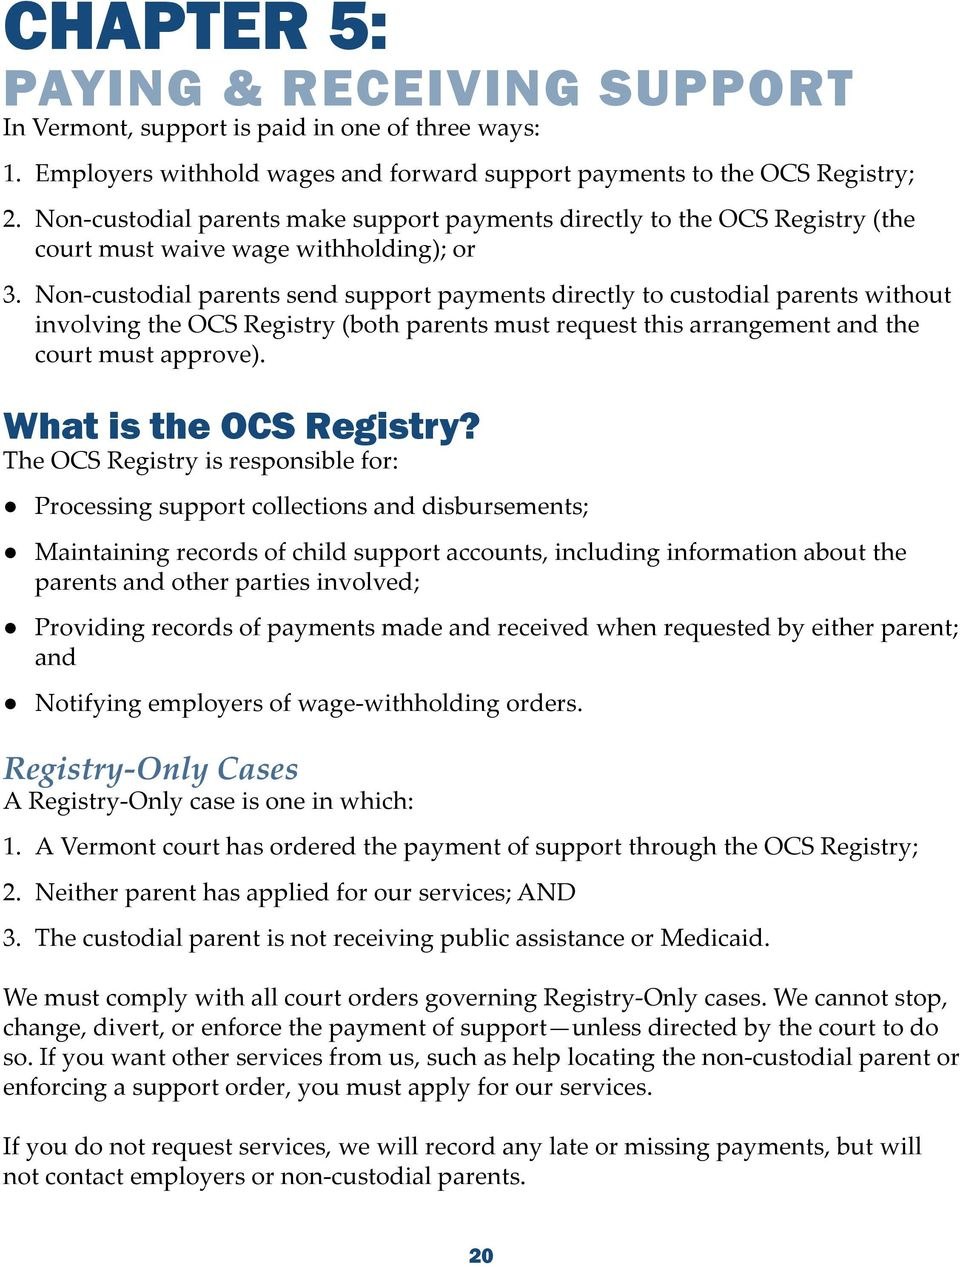 Non-custodial parents send support payments directly to custodial parents without involving the OCS Registry (both parents must request this arrangement and the court must approve).